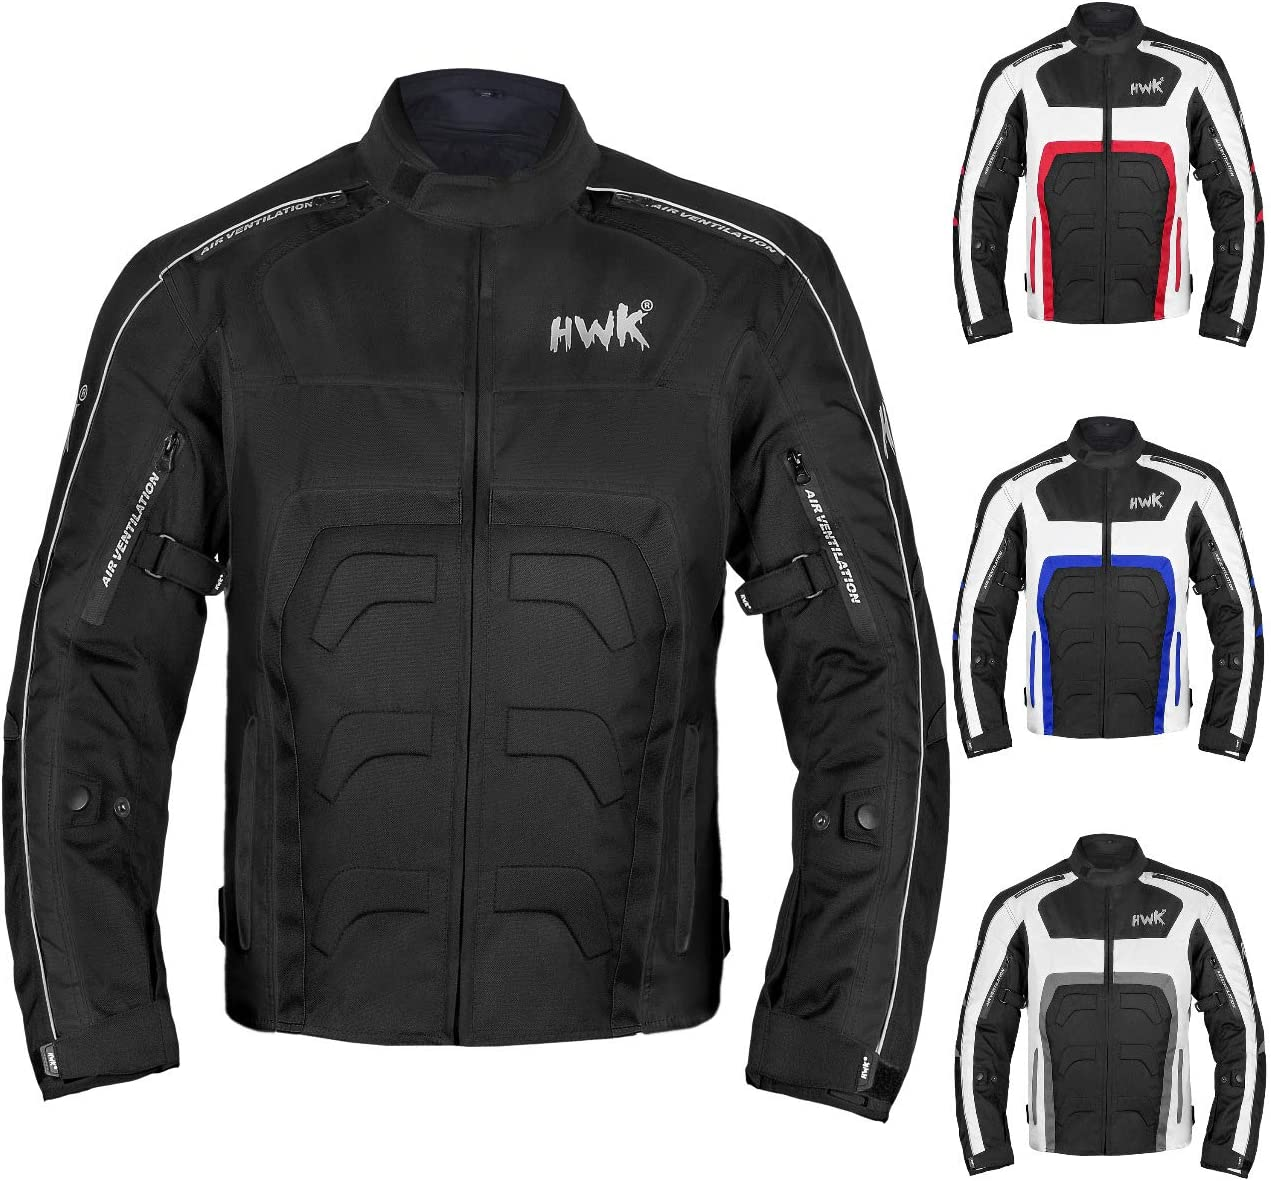 Textile Motorcycle Jacket For Men Dualsport Enduro Motorbike Biker Riding Jacket Breathable CE ARMORED WATERPROOF (Black, S)